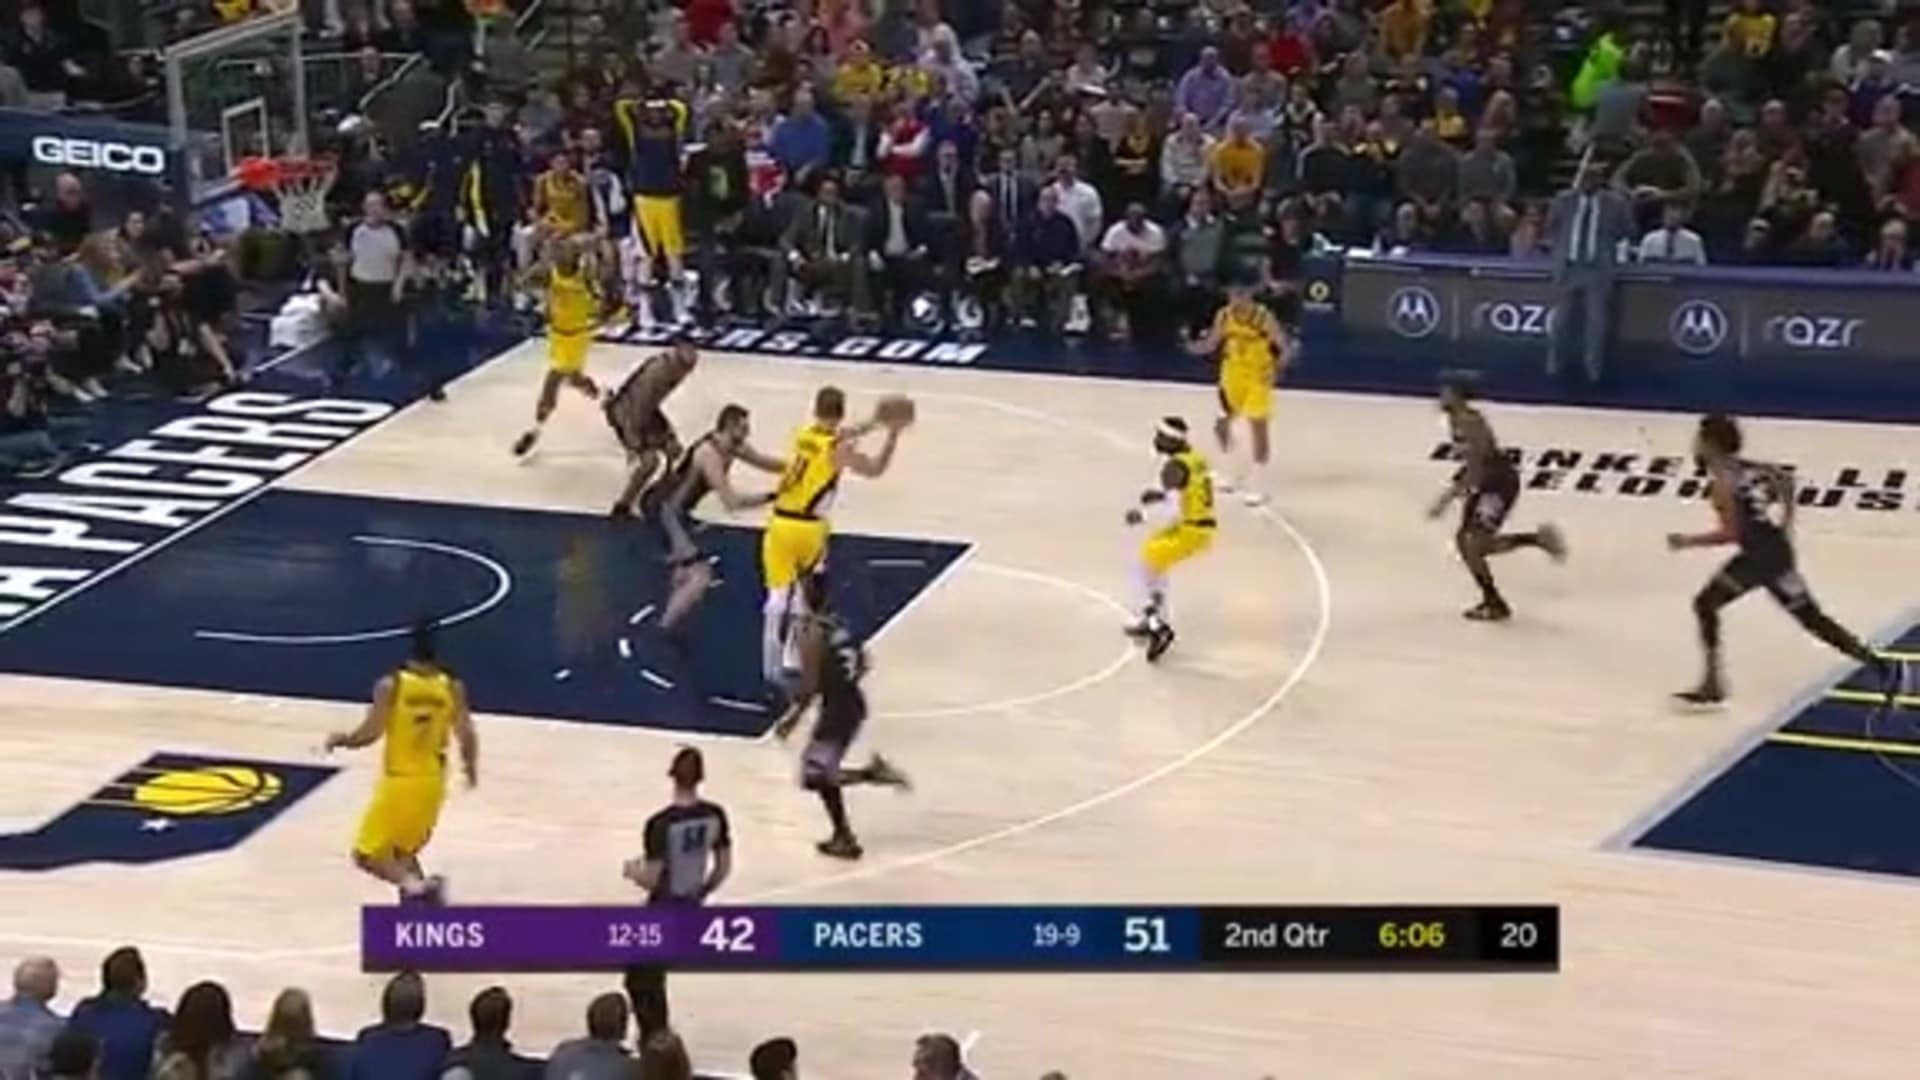 Sabonis with the Dish